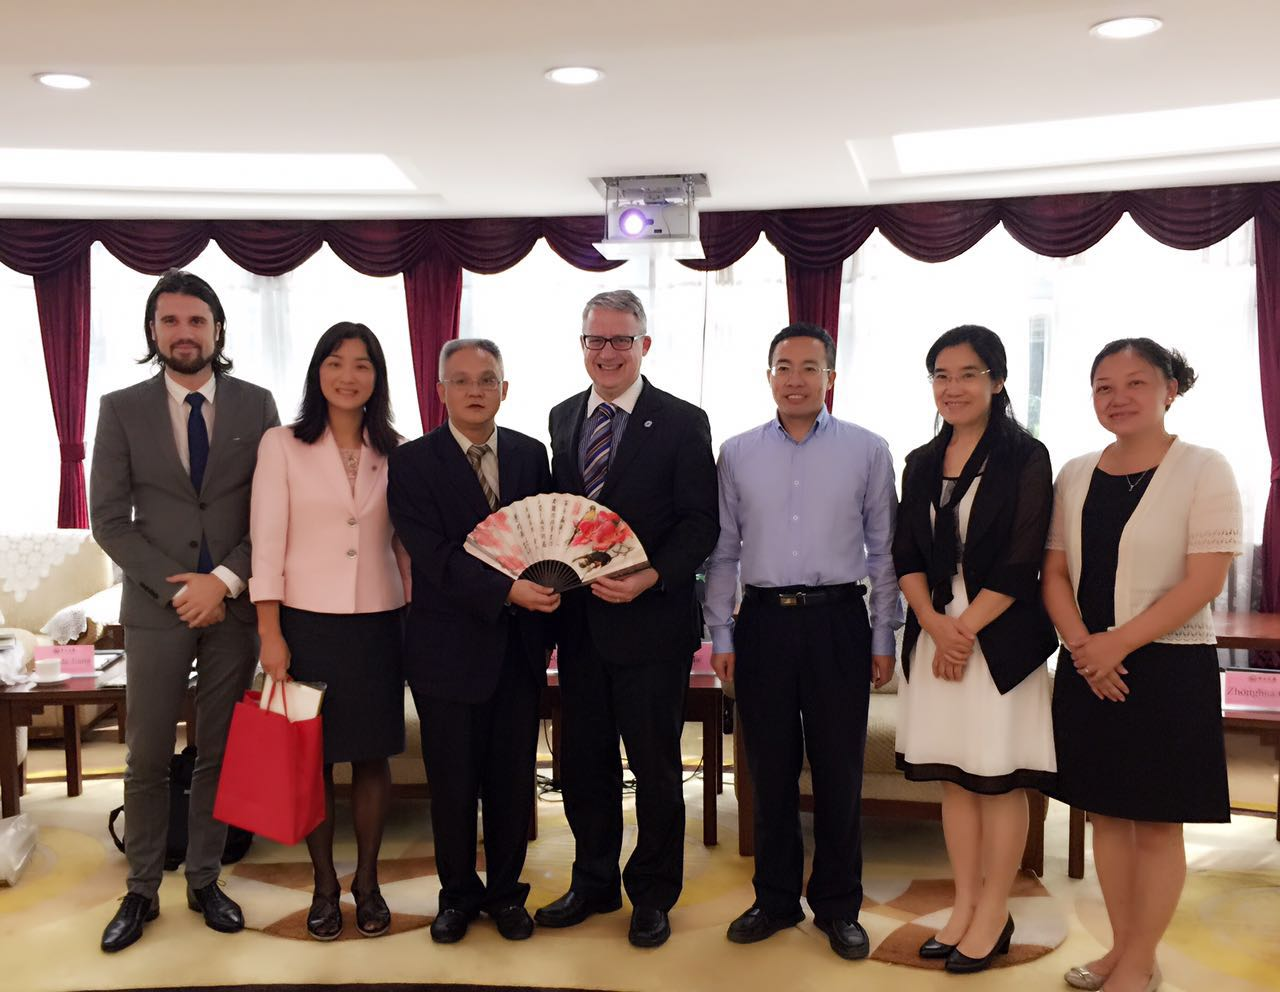 Sun-Yat-Sen Univ visit on Nov 9, 2015